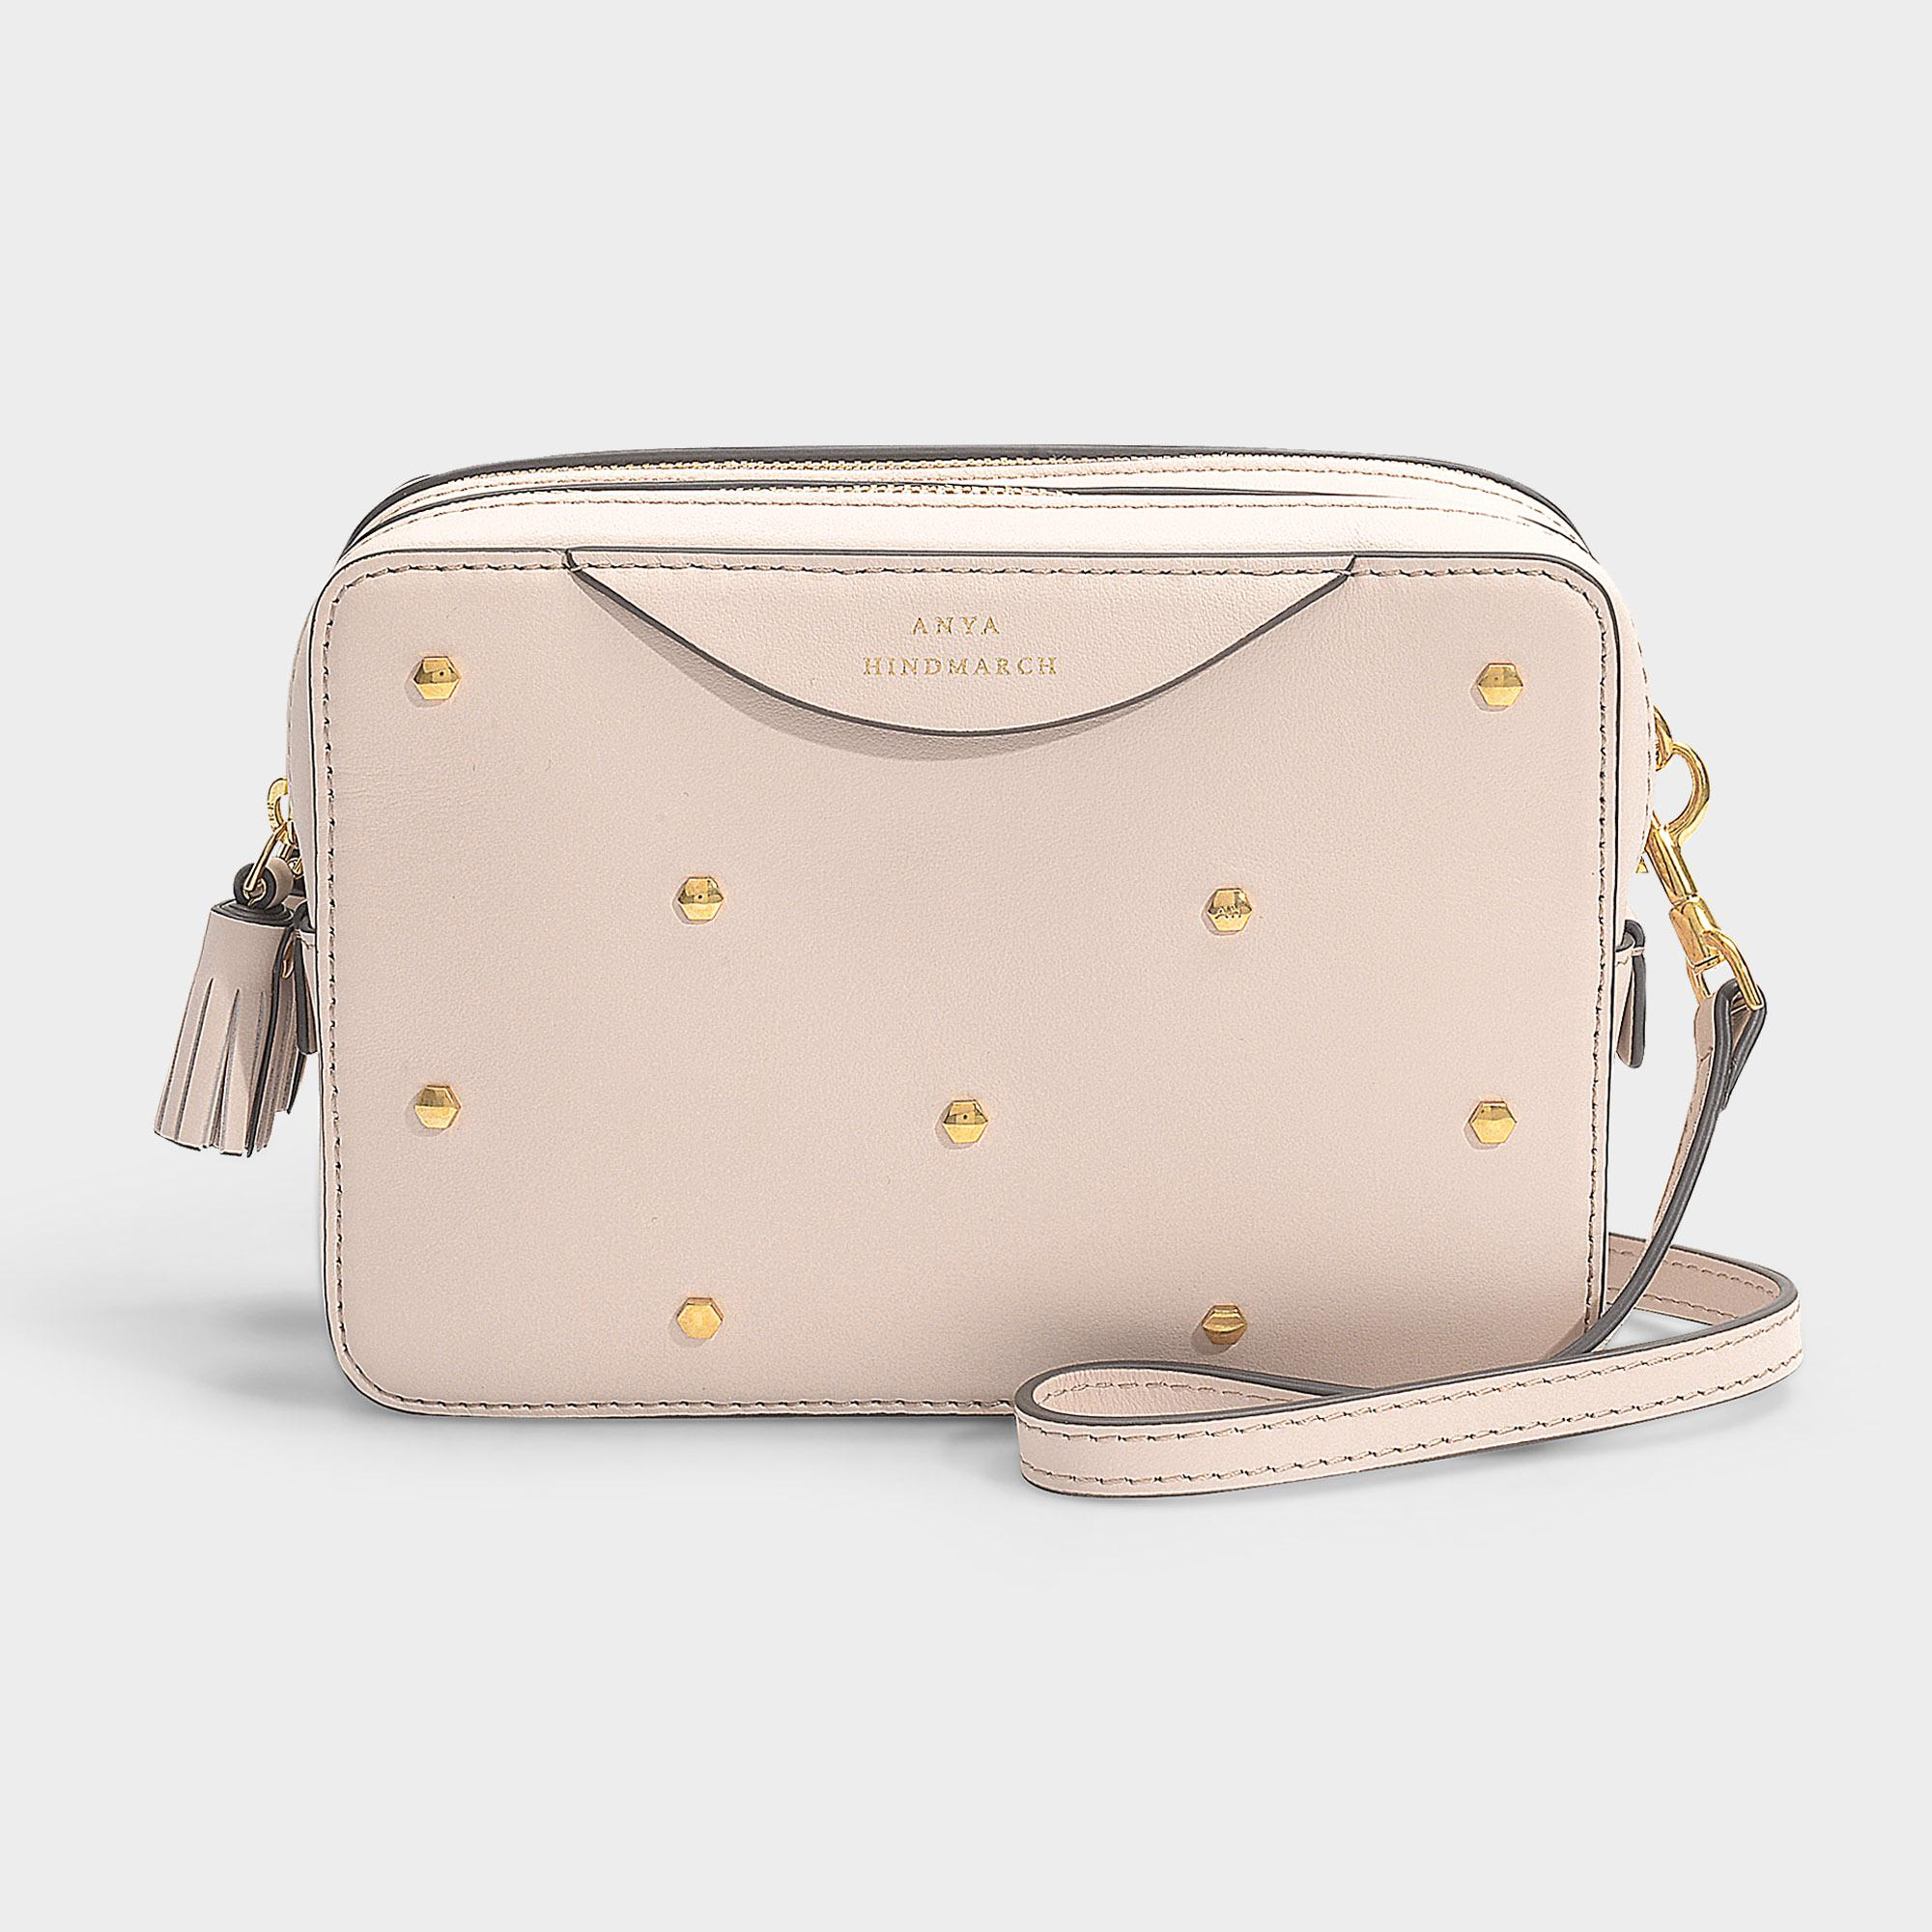 40c802d98e32 anya-hindmarch--Double-Zip-Wallet-On-Strap-Hexagon-Studs-In-Light-Rose-Circus-Leather.jpeg